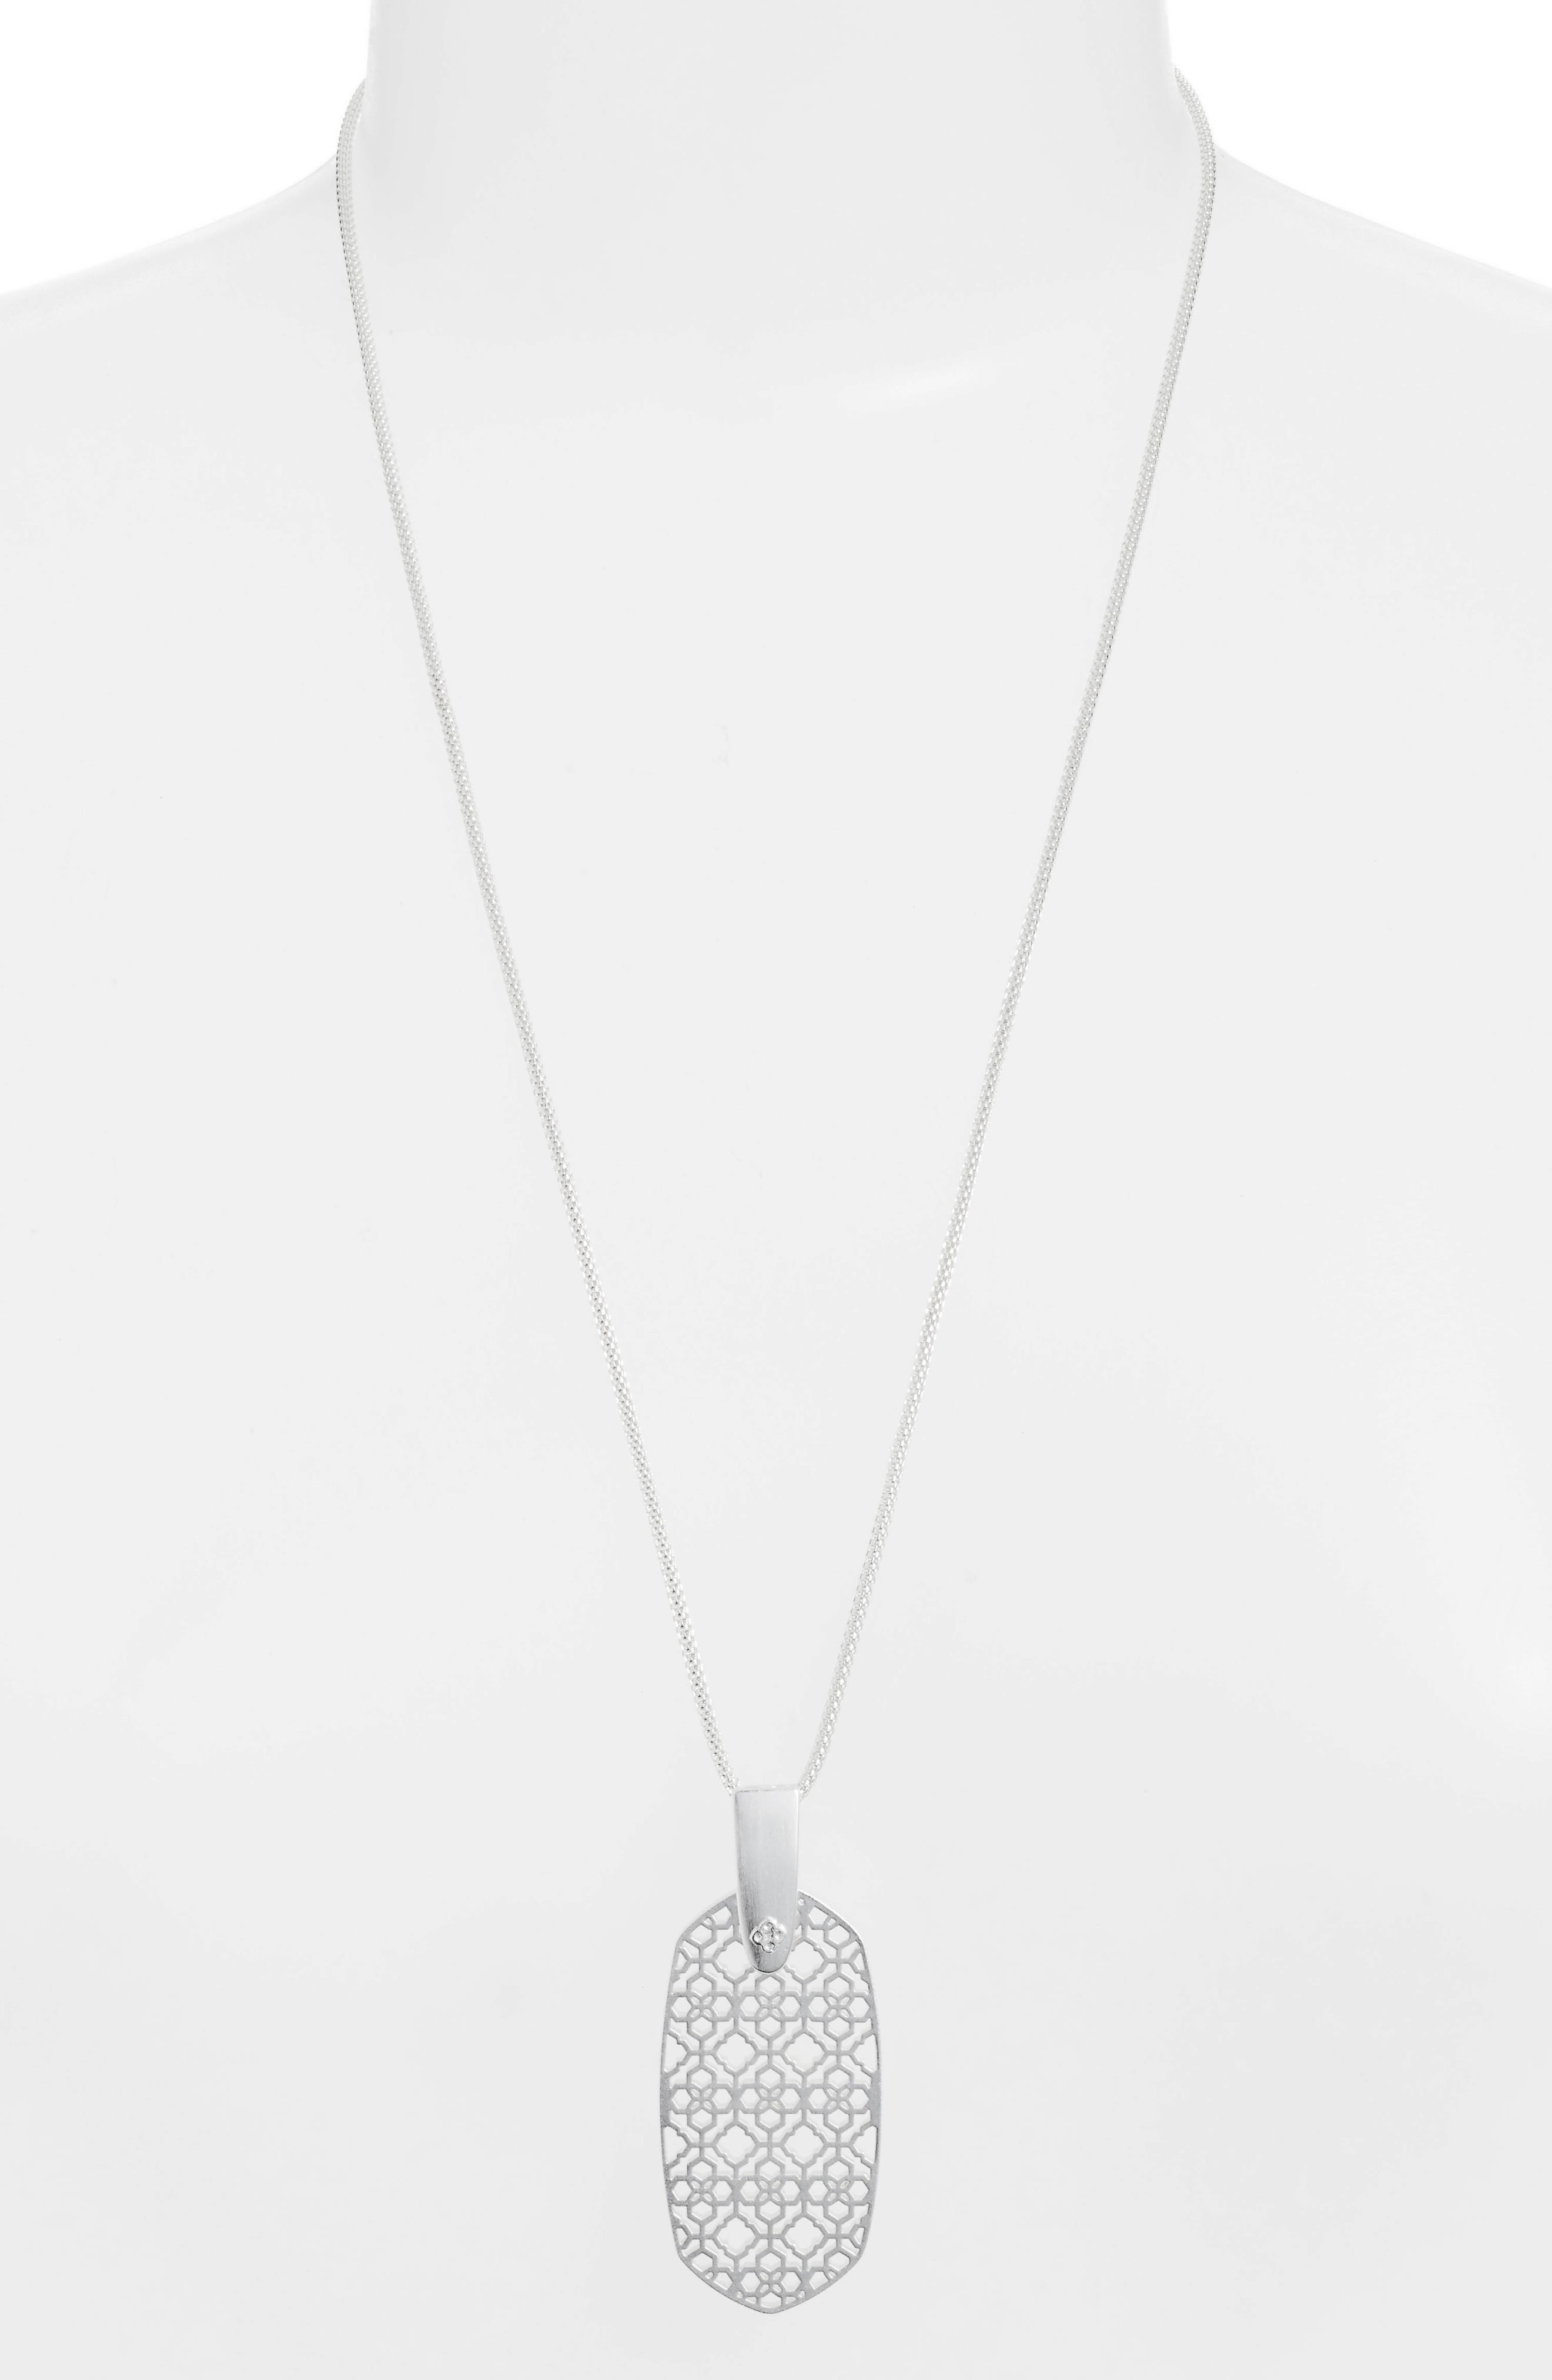 KENDRA SCOTT Inez Filigree Pendant Necklace, Main, color, RHODIUM FILIGREE METAL